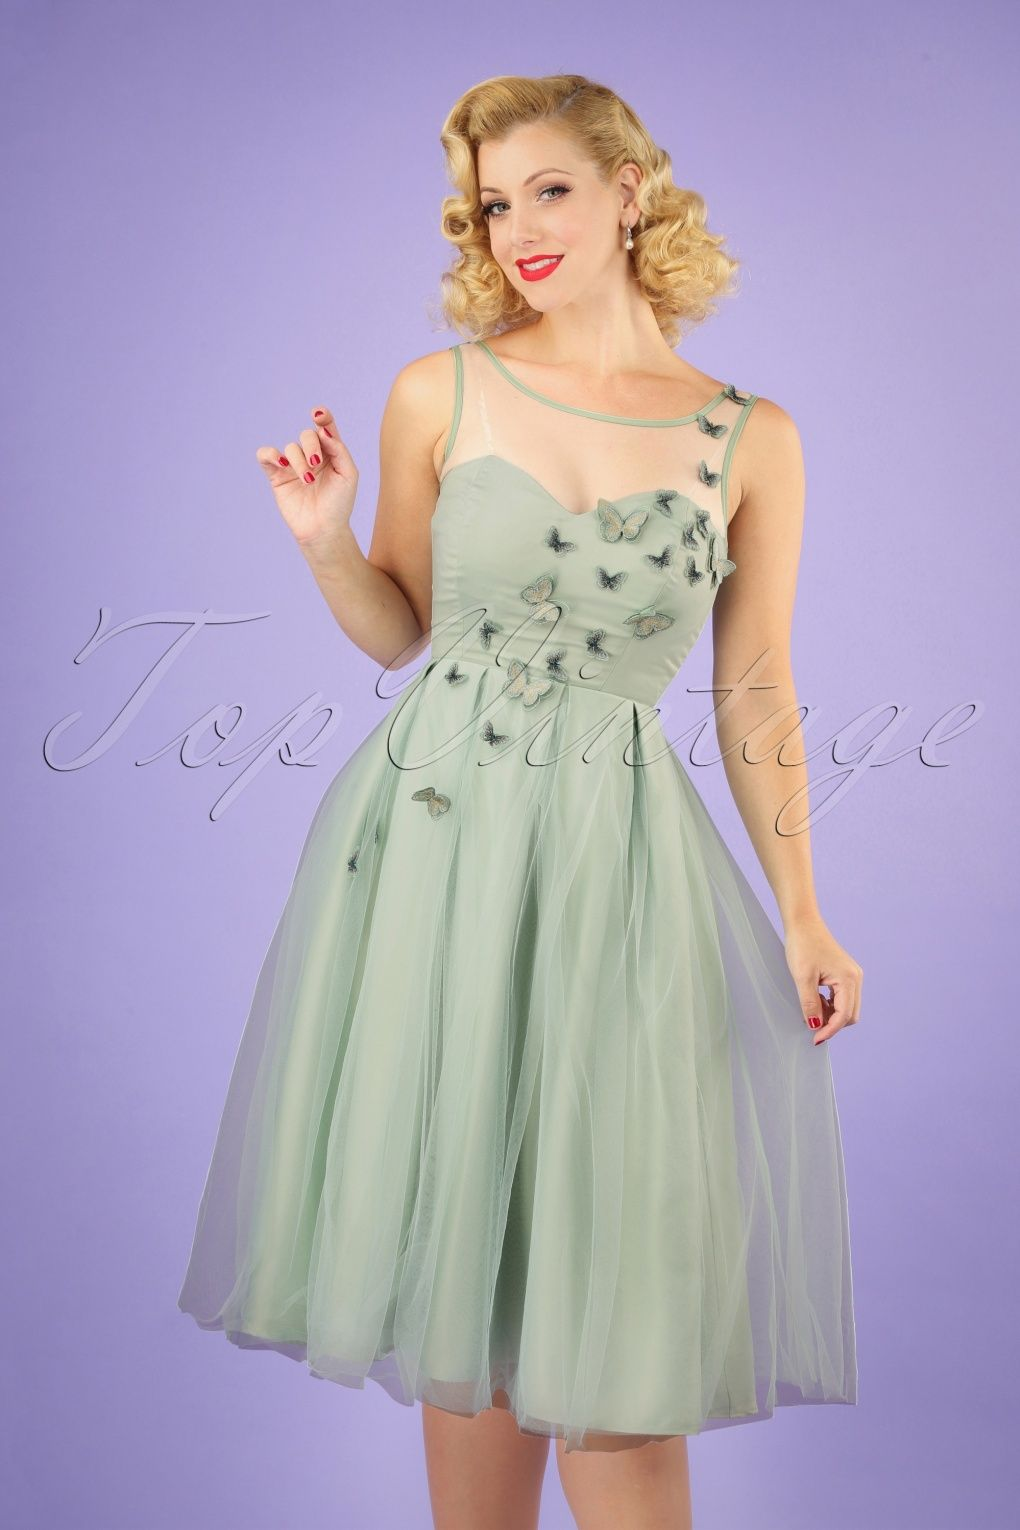 Verbazingwekkend Collectif Clothing 50s Tiana Butterfly Occasion Swing Dress in GI-32